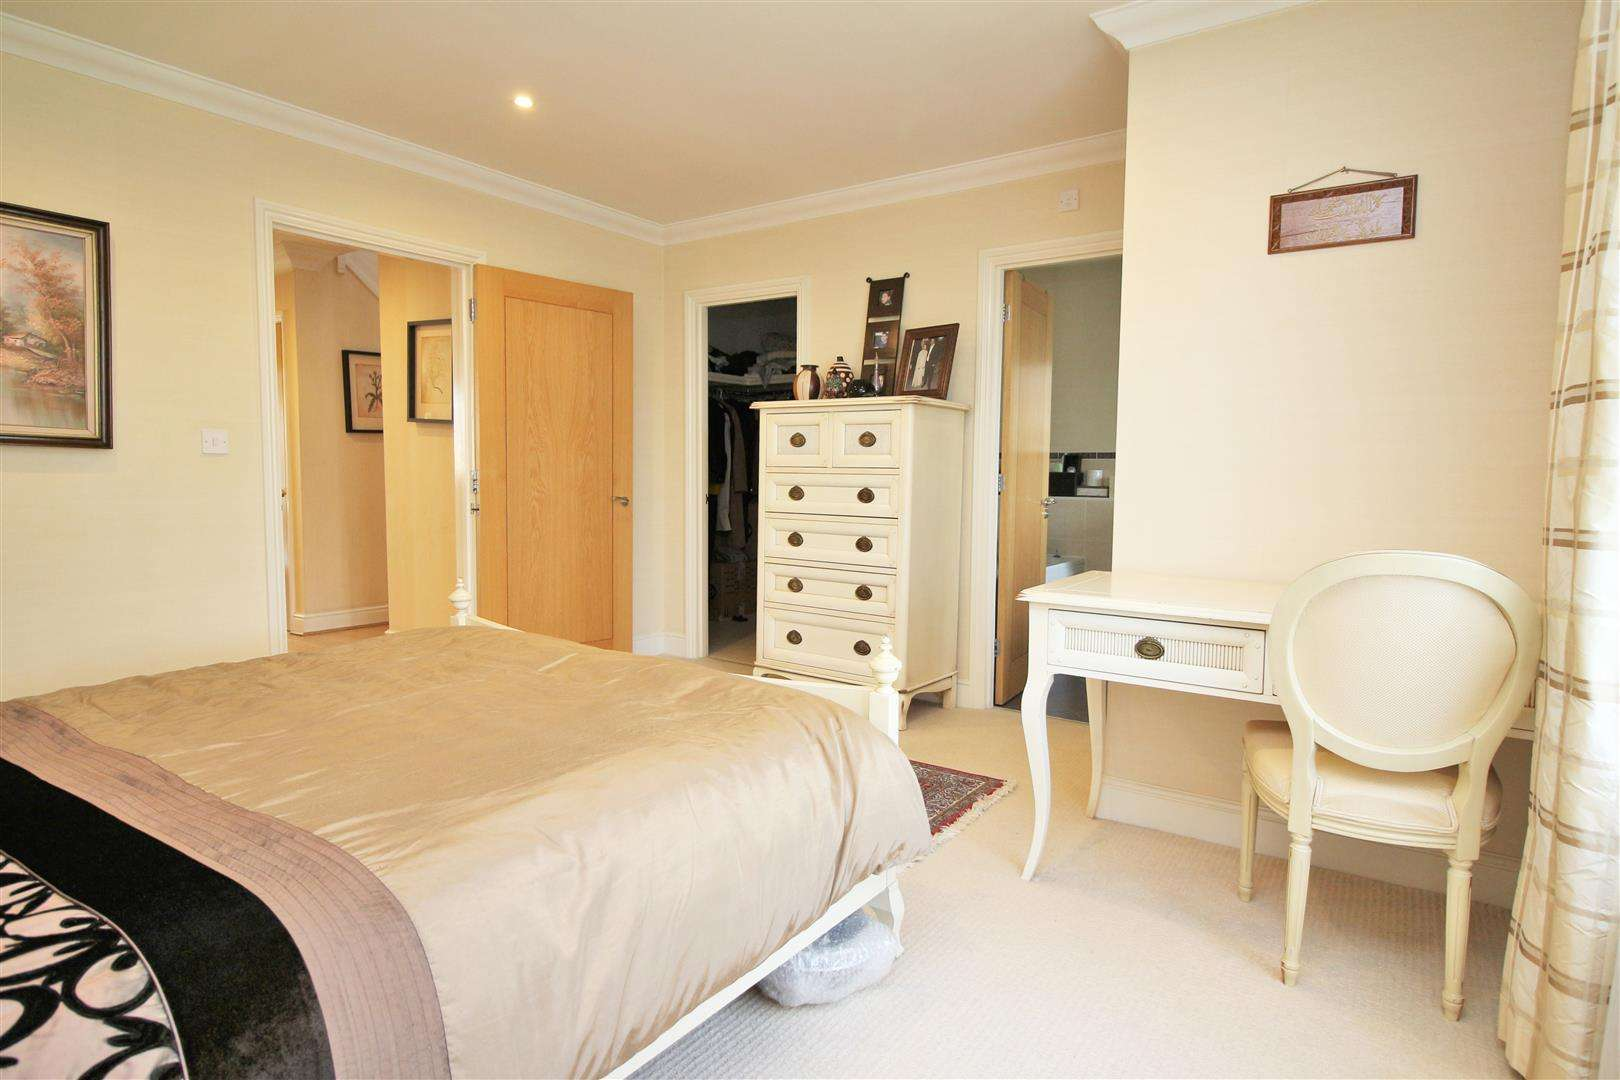 4 bed to rent in Bushey Heath - (Property Image 9)